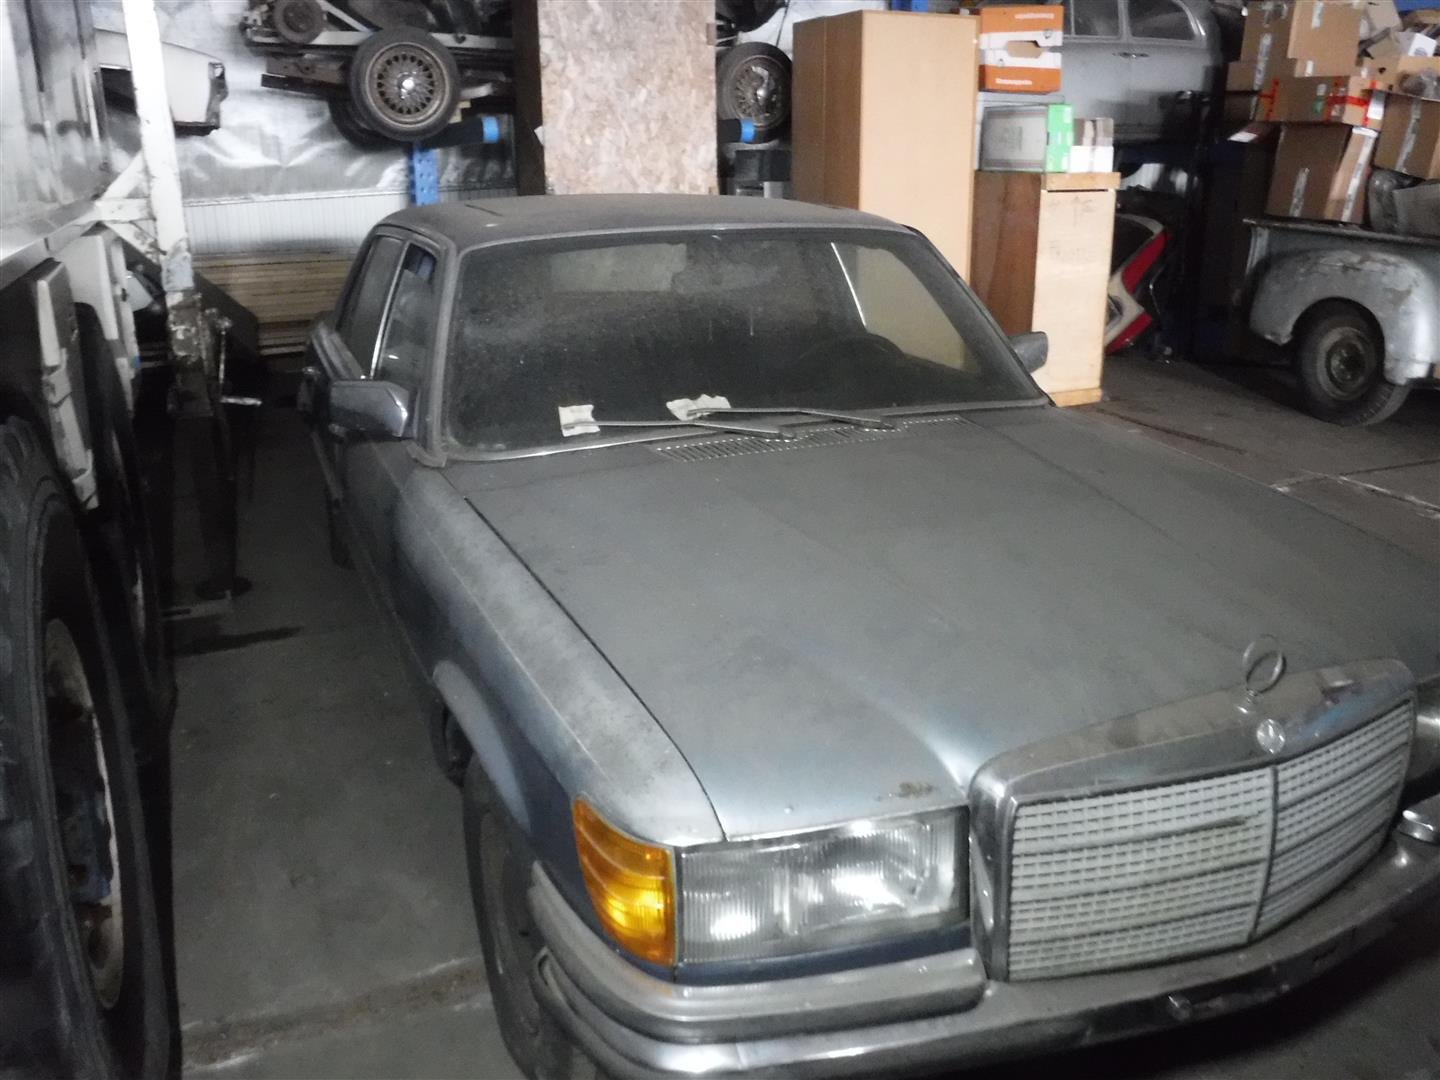 1977 Mercedes Benz 450SE '77 For Sale (picture 1 of 6)